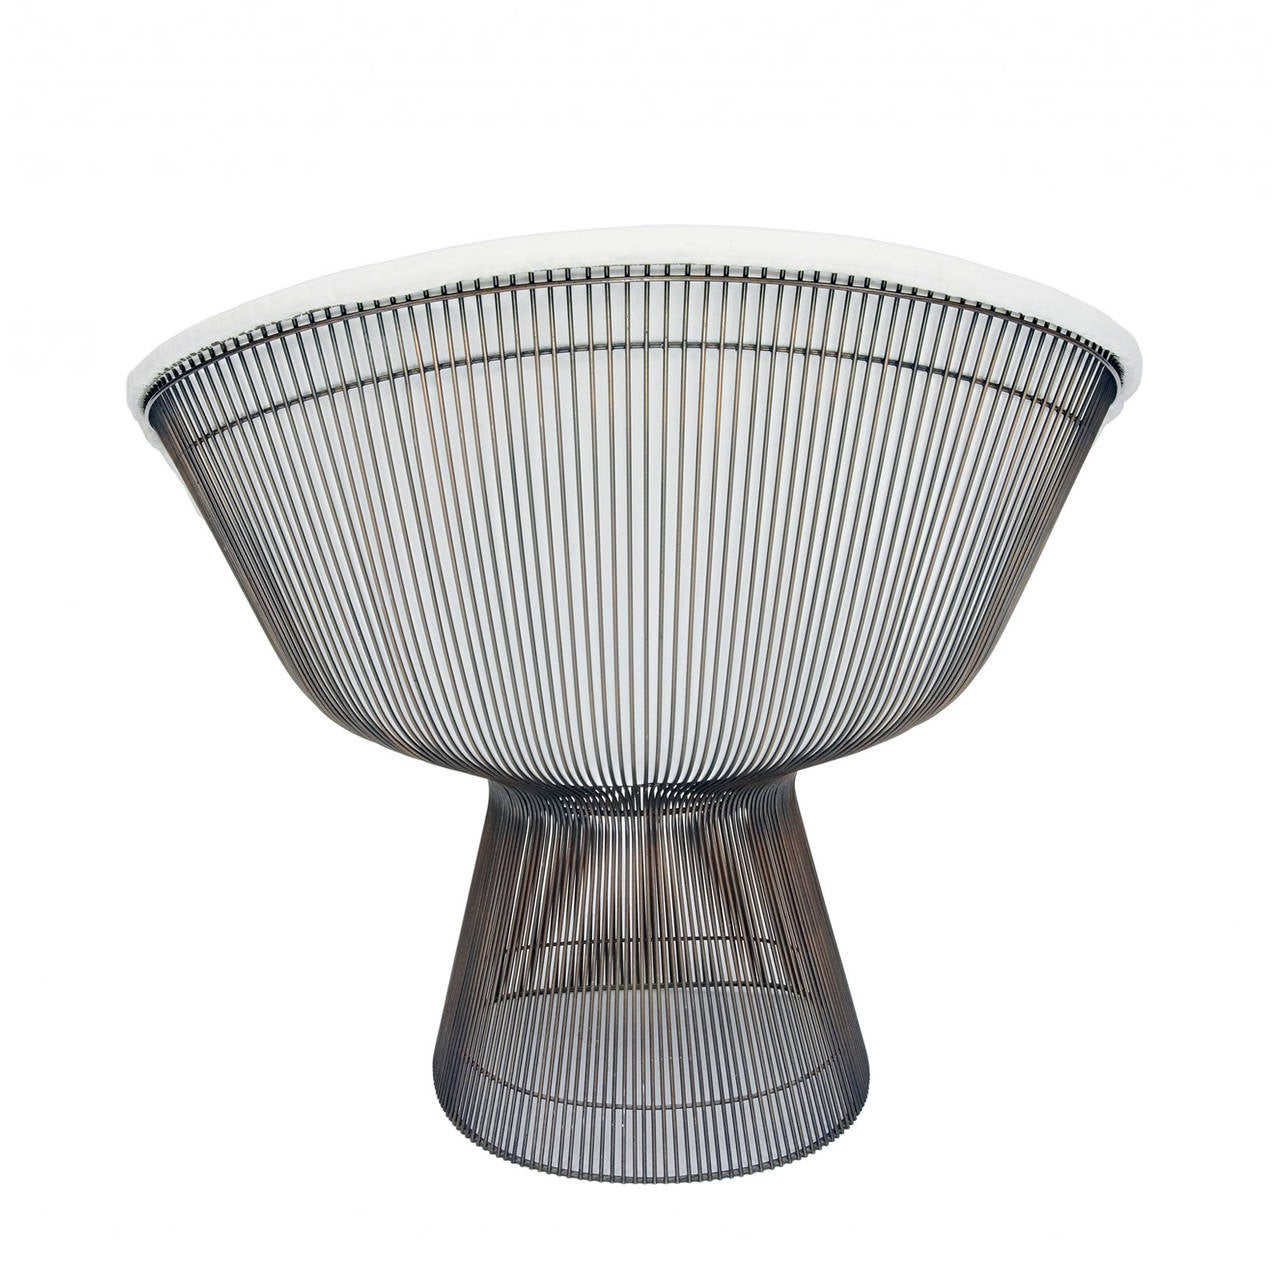 Warren Platner Lounge Chair at 1stdibs